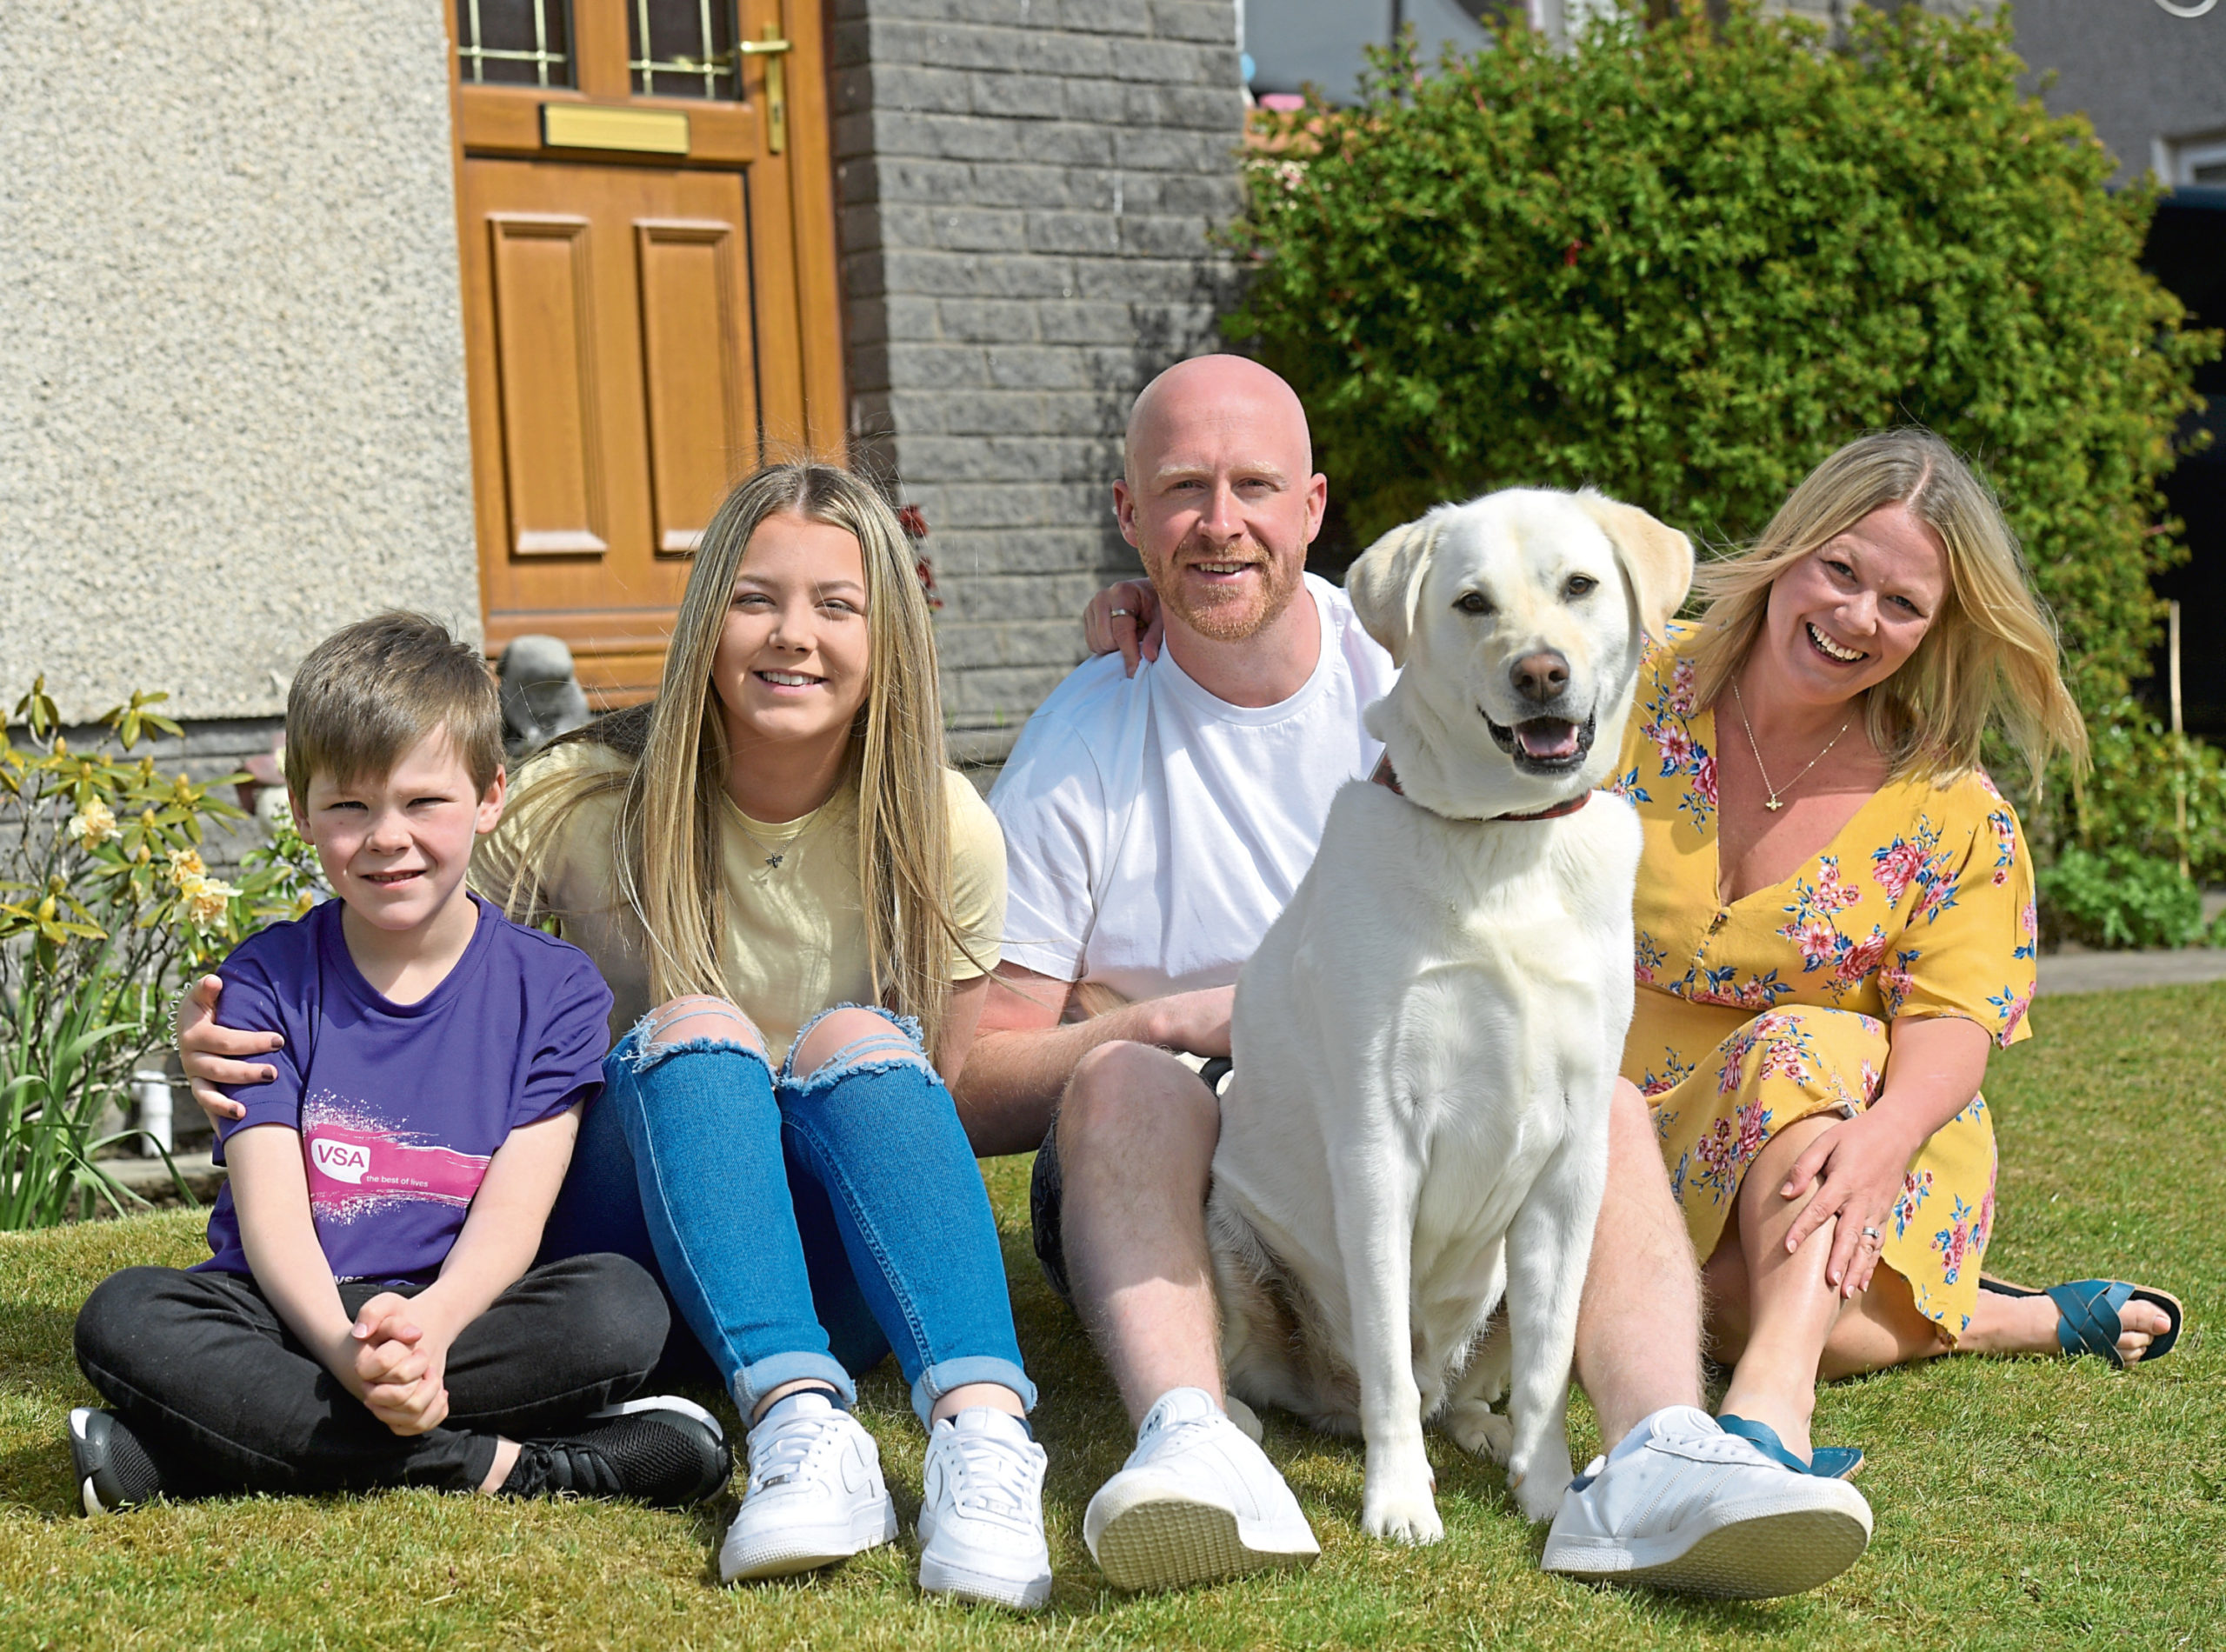 Mac Johnston with, from left, sister Kennedy, dad Terry, mum Jodie and Marley the dog,